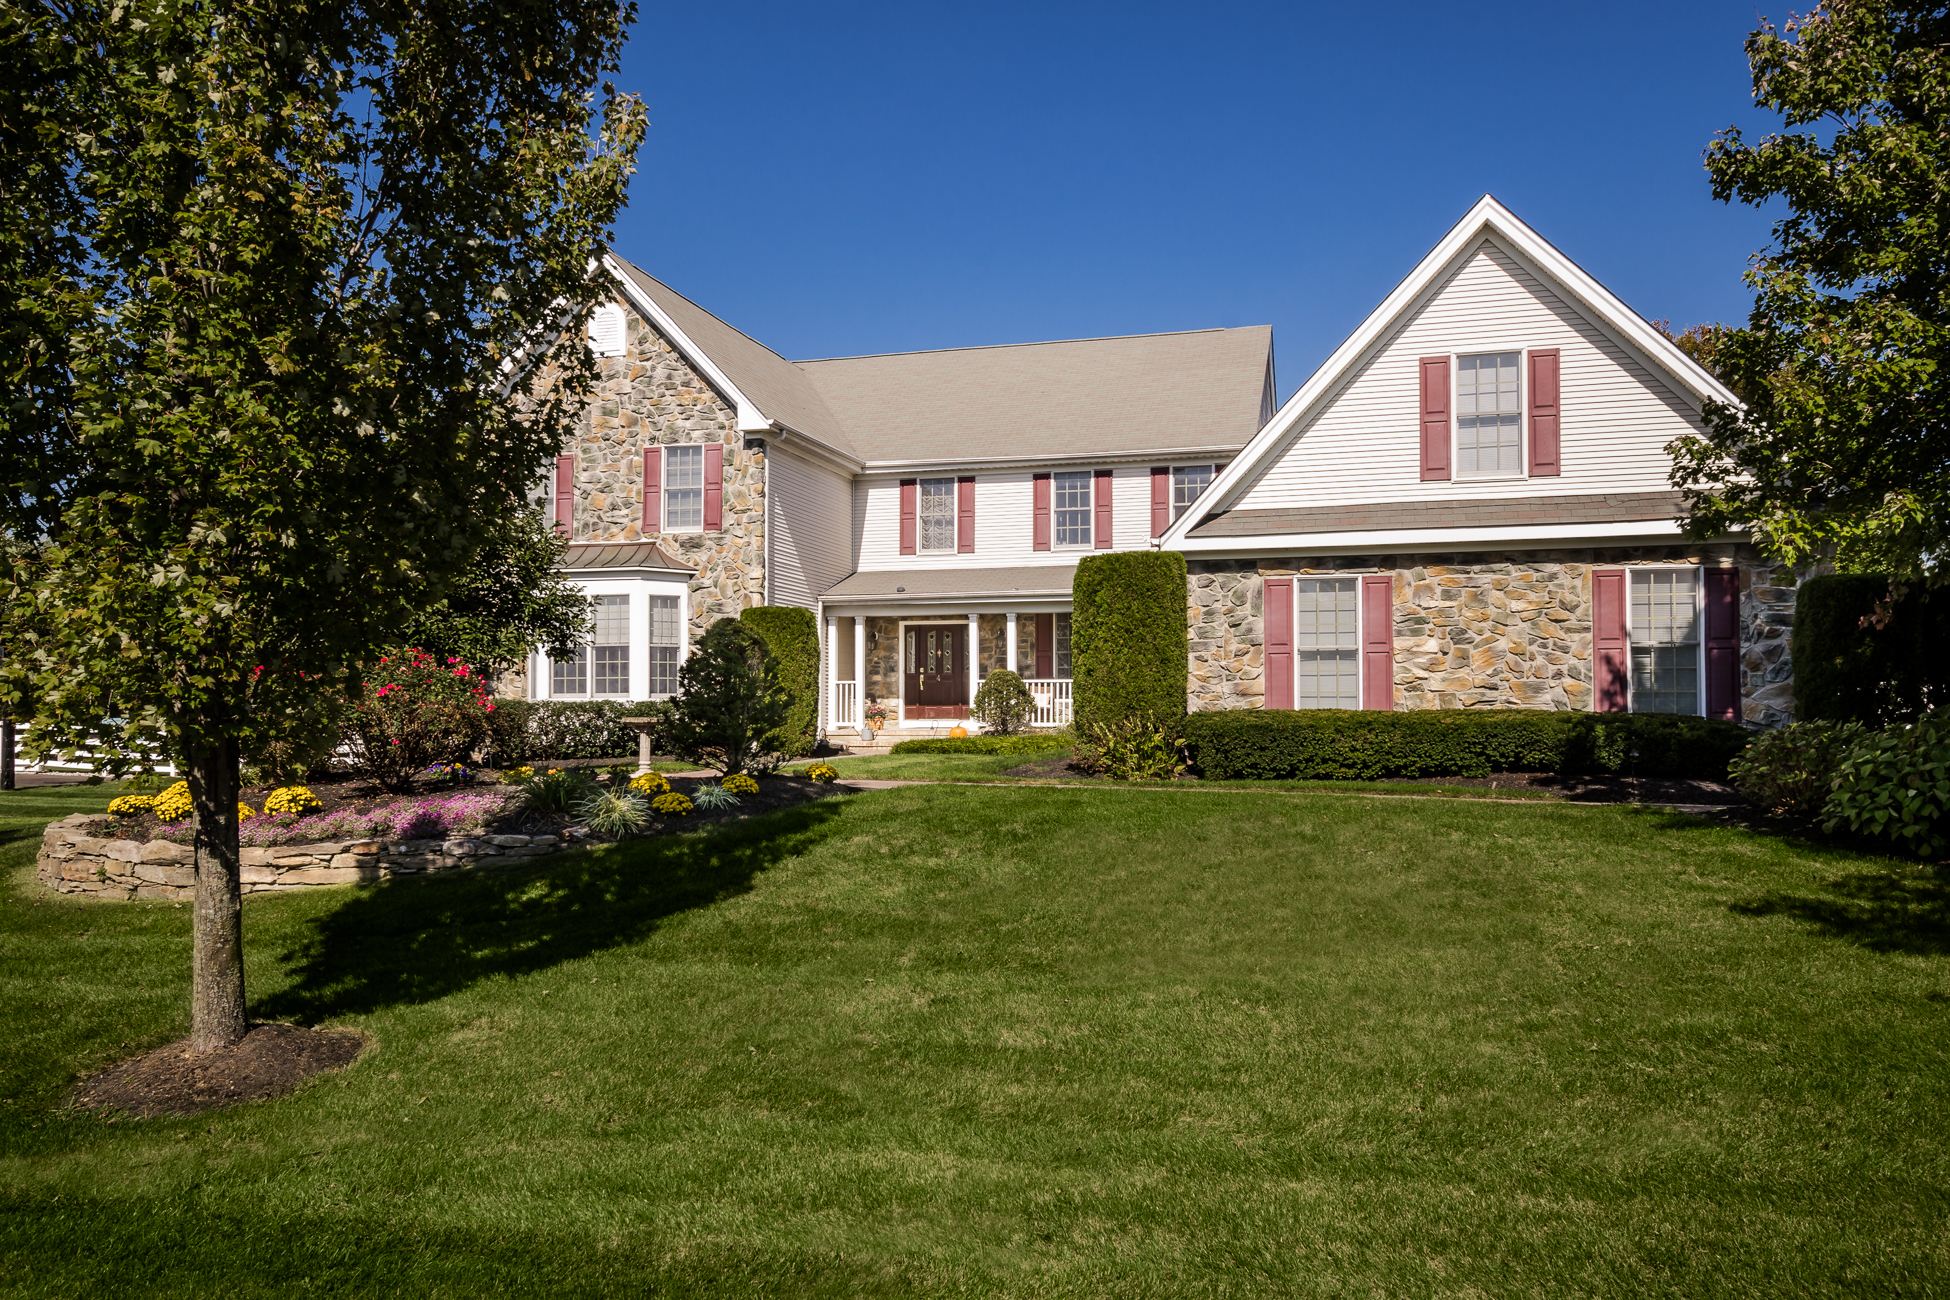 Single Family Home for Sale at Welcoming with Gracious Warmth and Every Amenity 4 Barley Court Plainsboro, 08536 United States